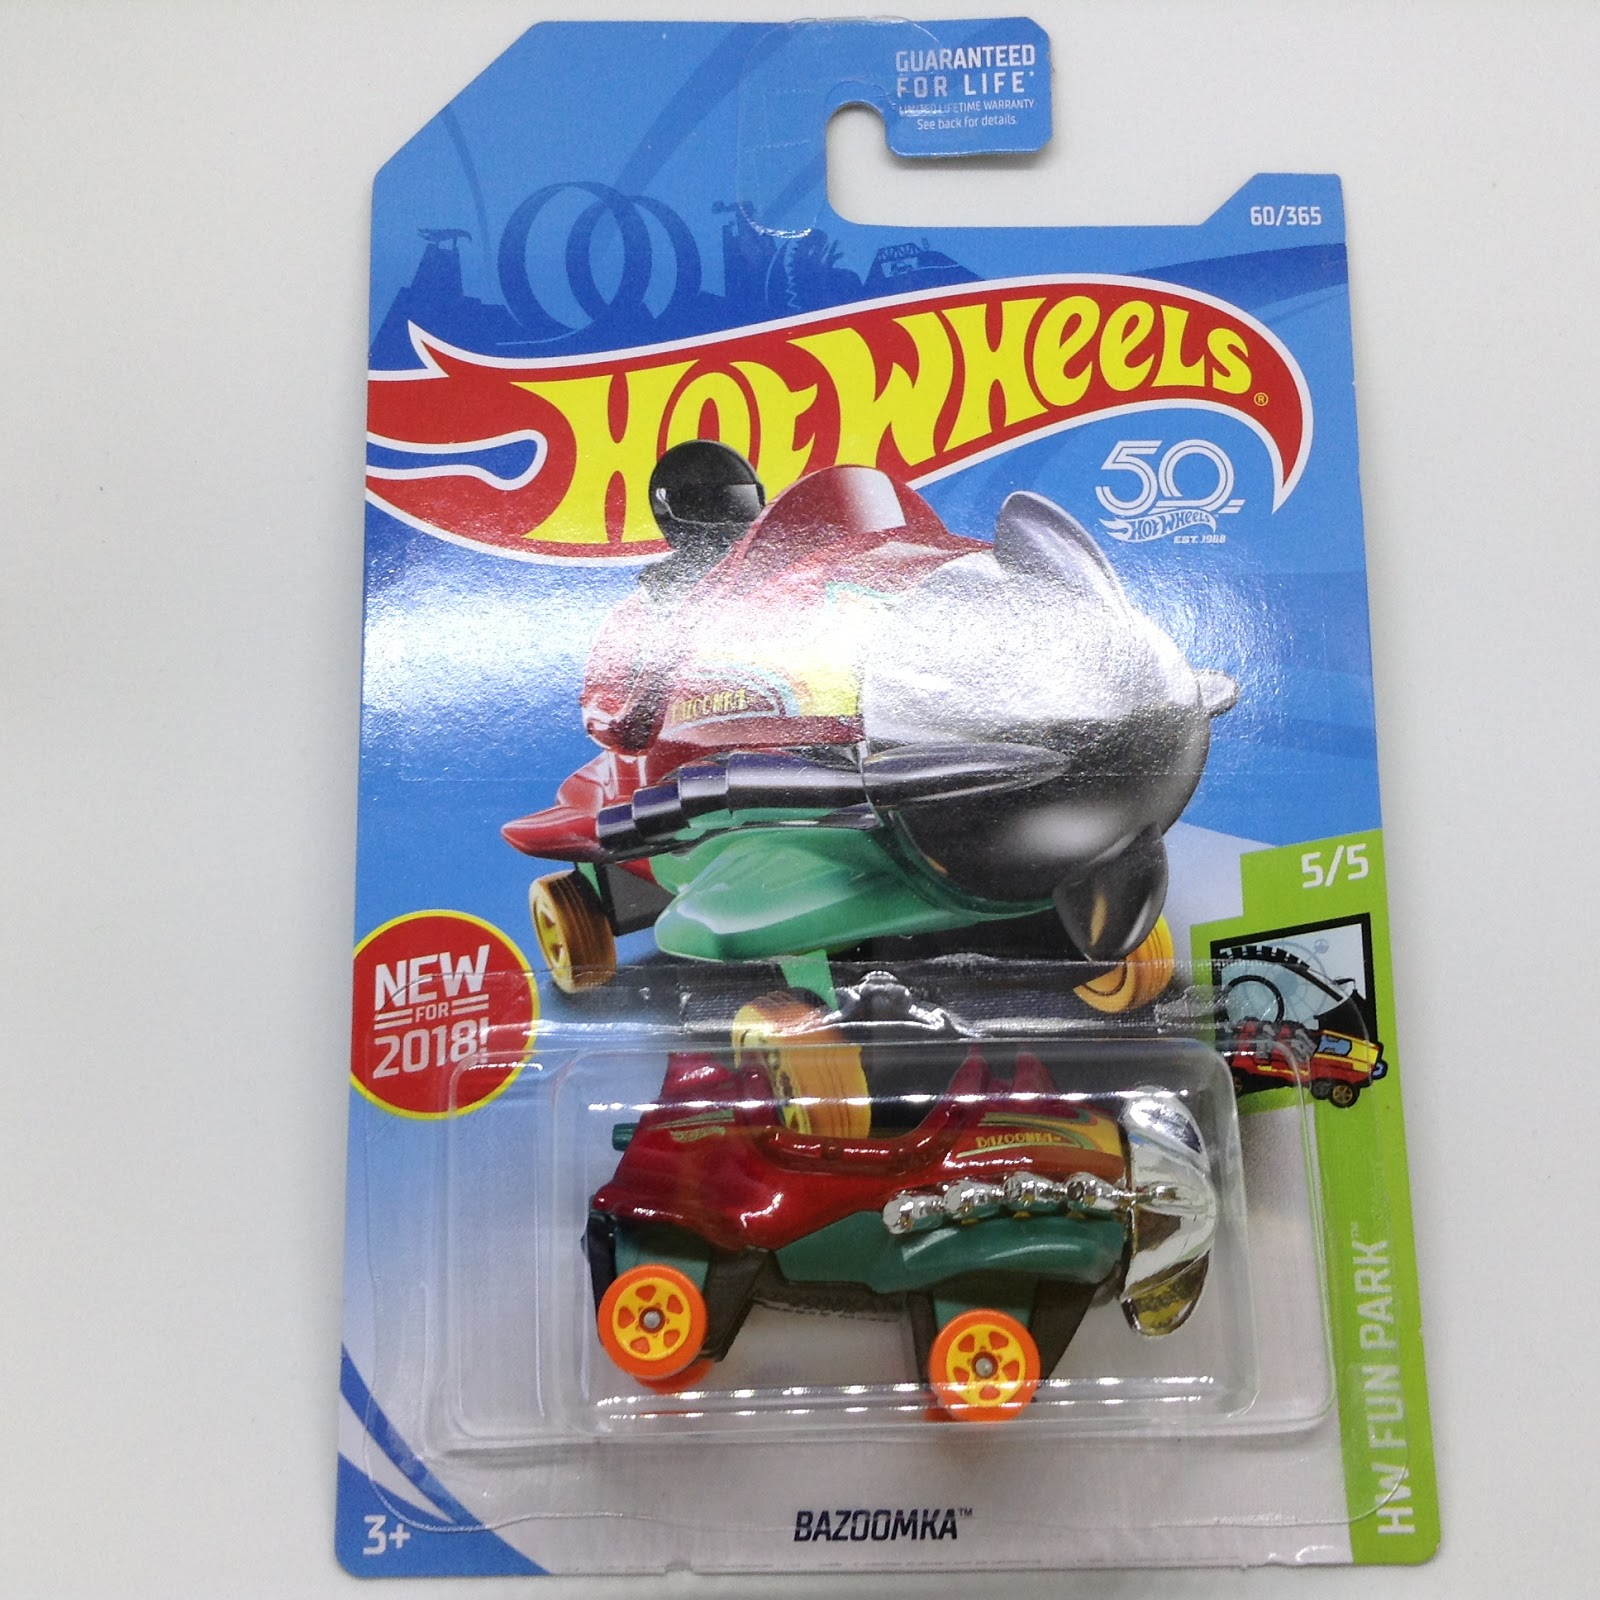 Julian S Hot Wheels Blog Bazoomka New For 2018 Hw Fun